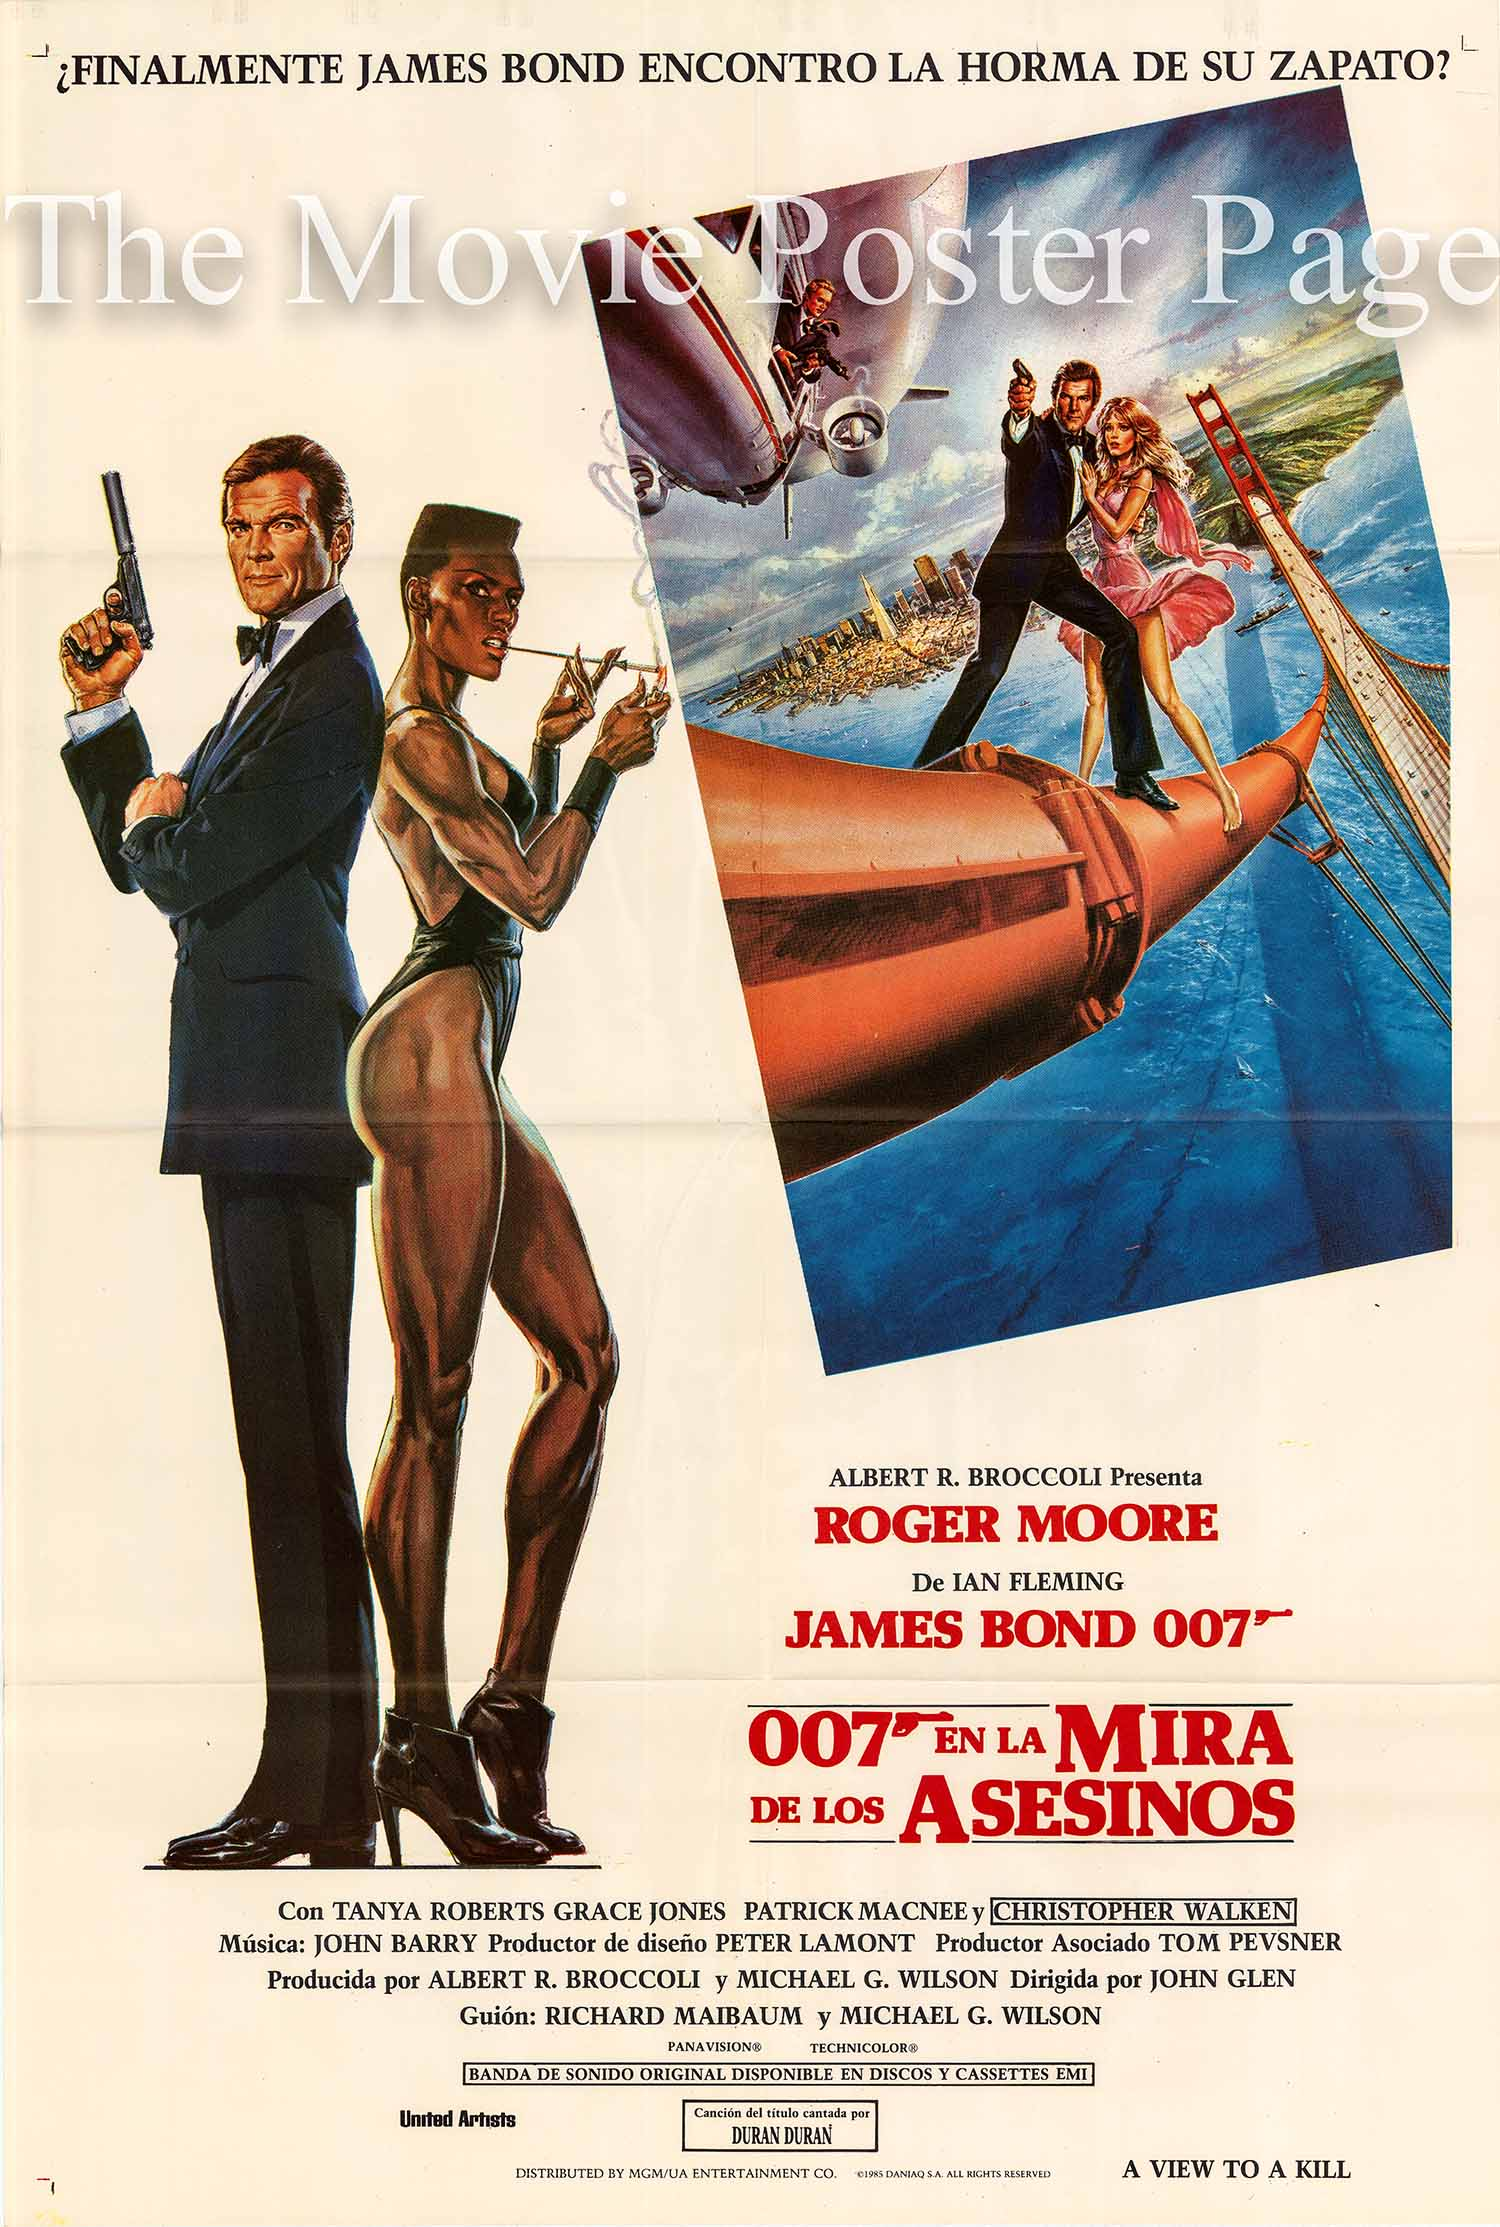 Pictured is an Argentine promotional poster made for the 1985 John Glen film A View to a Kill starring Roger Moore as James Bond.